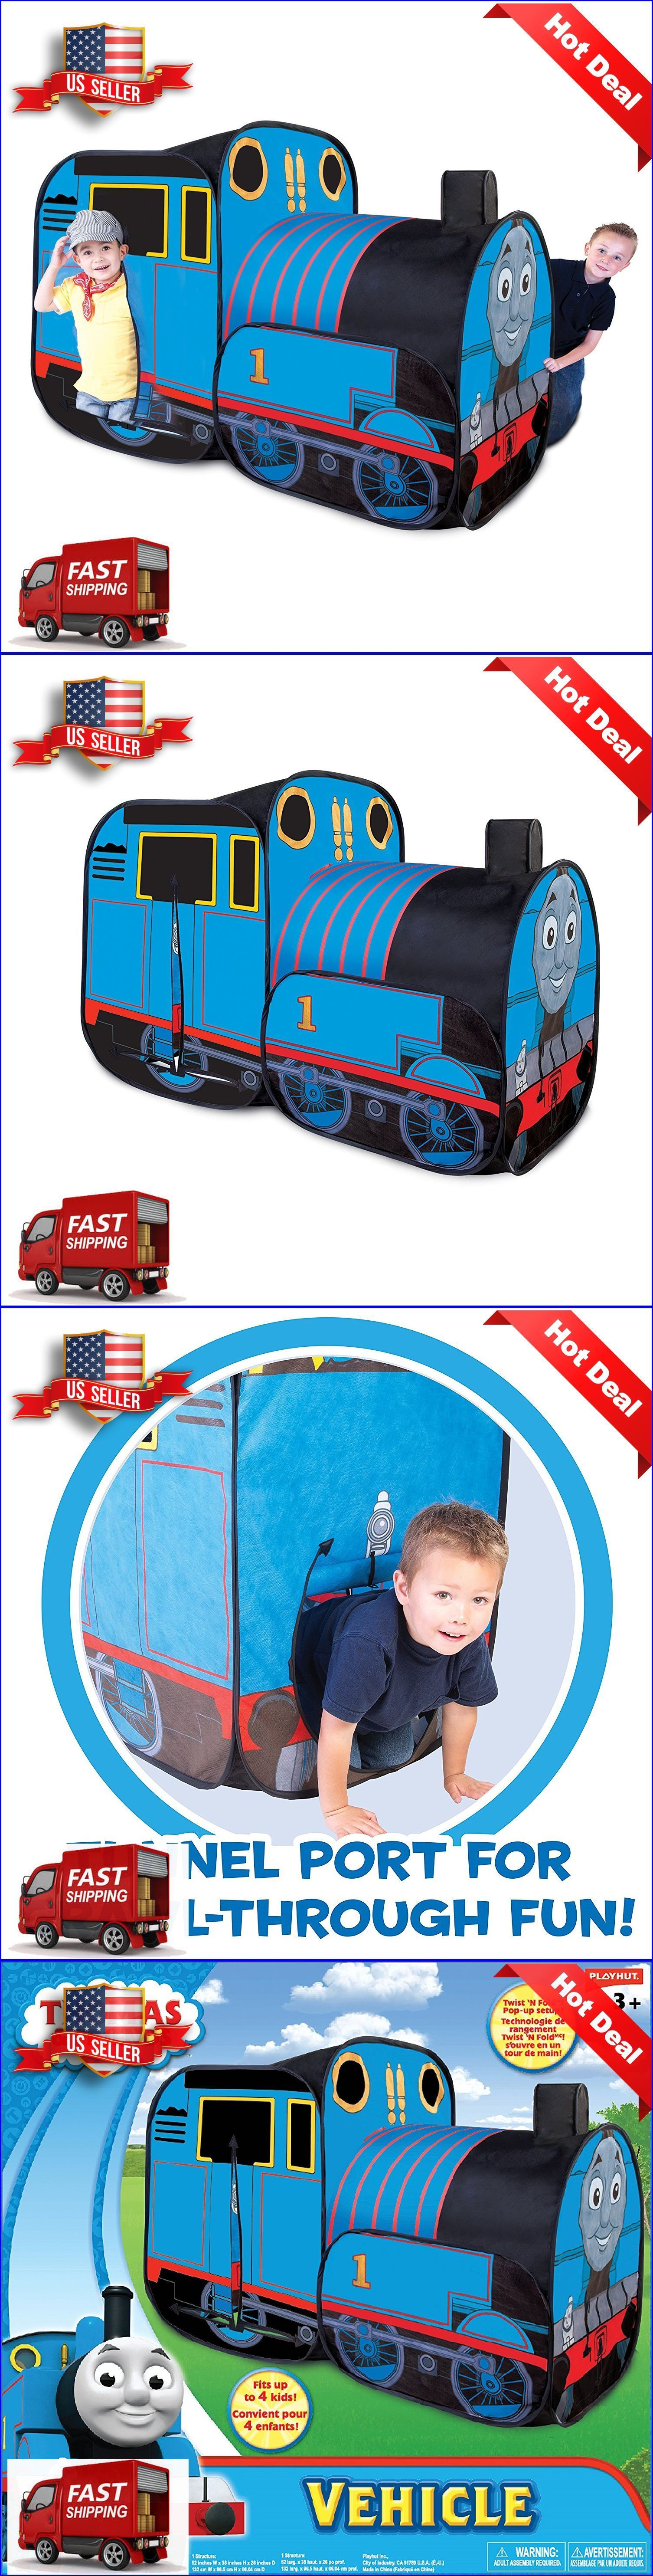 Play Tents 145997 Playhut Thomas The Train The Tank Play Tent Vehicle For Boys And  sc 1 st  Pinterest & Play Tents 145997: Playhut Thomas The Train The Tank Play Tent ...